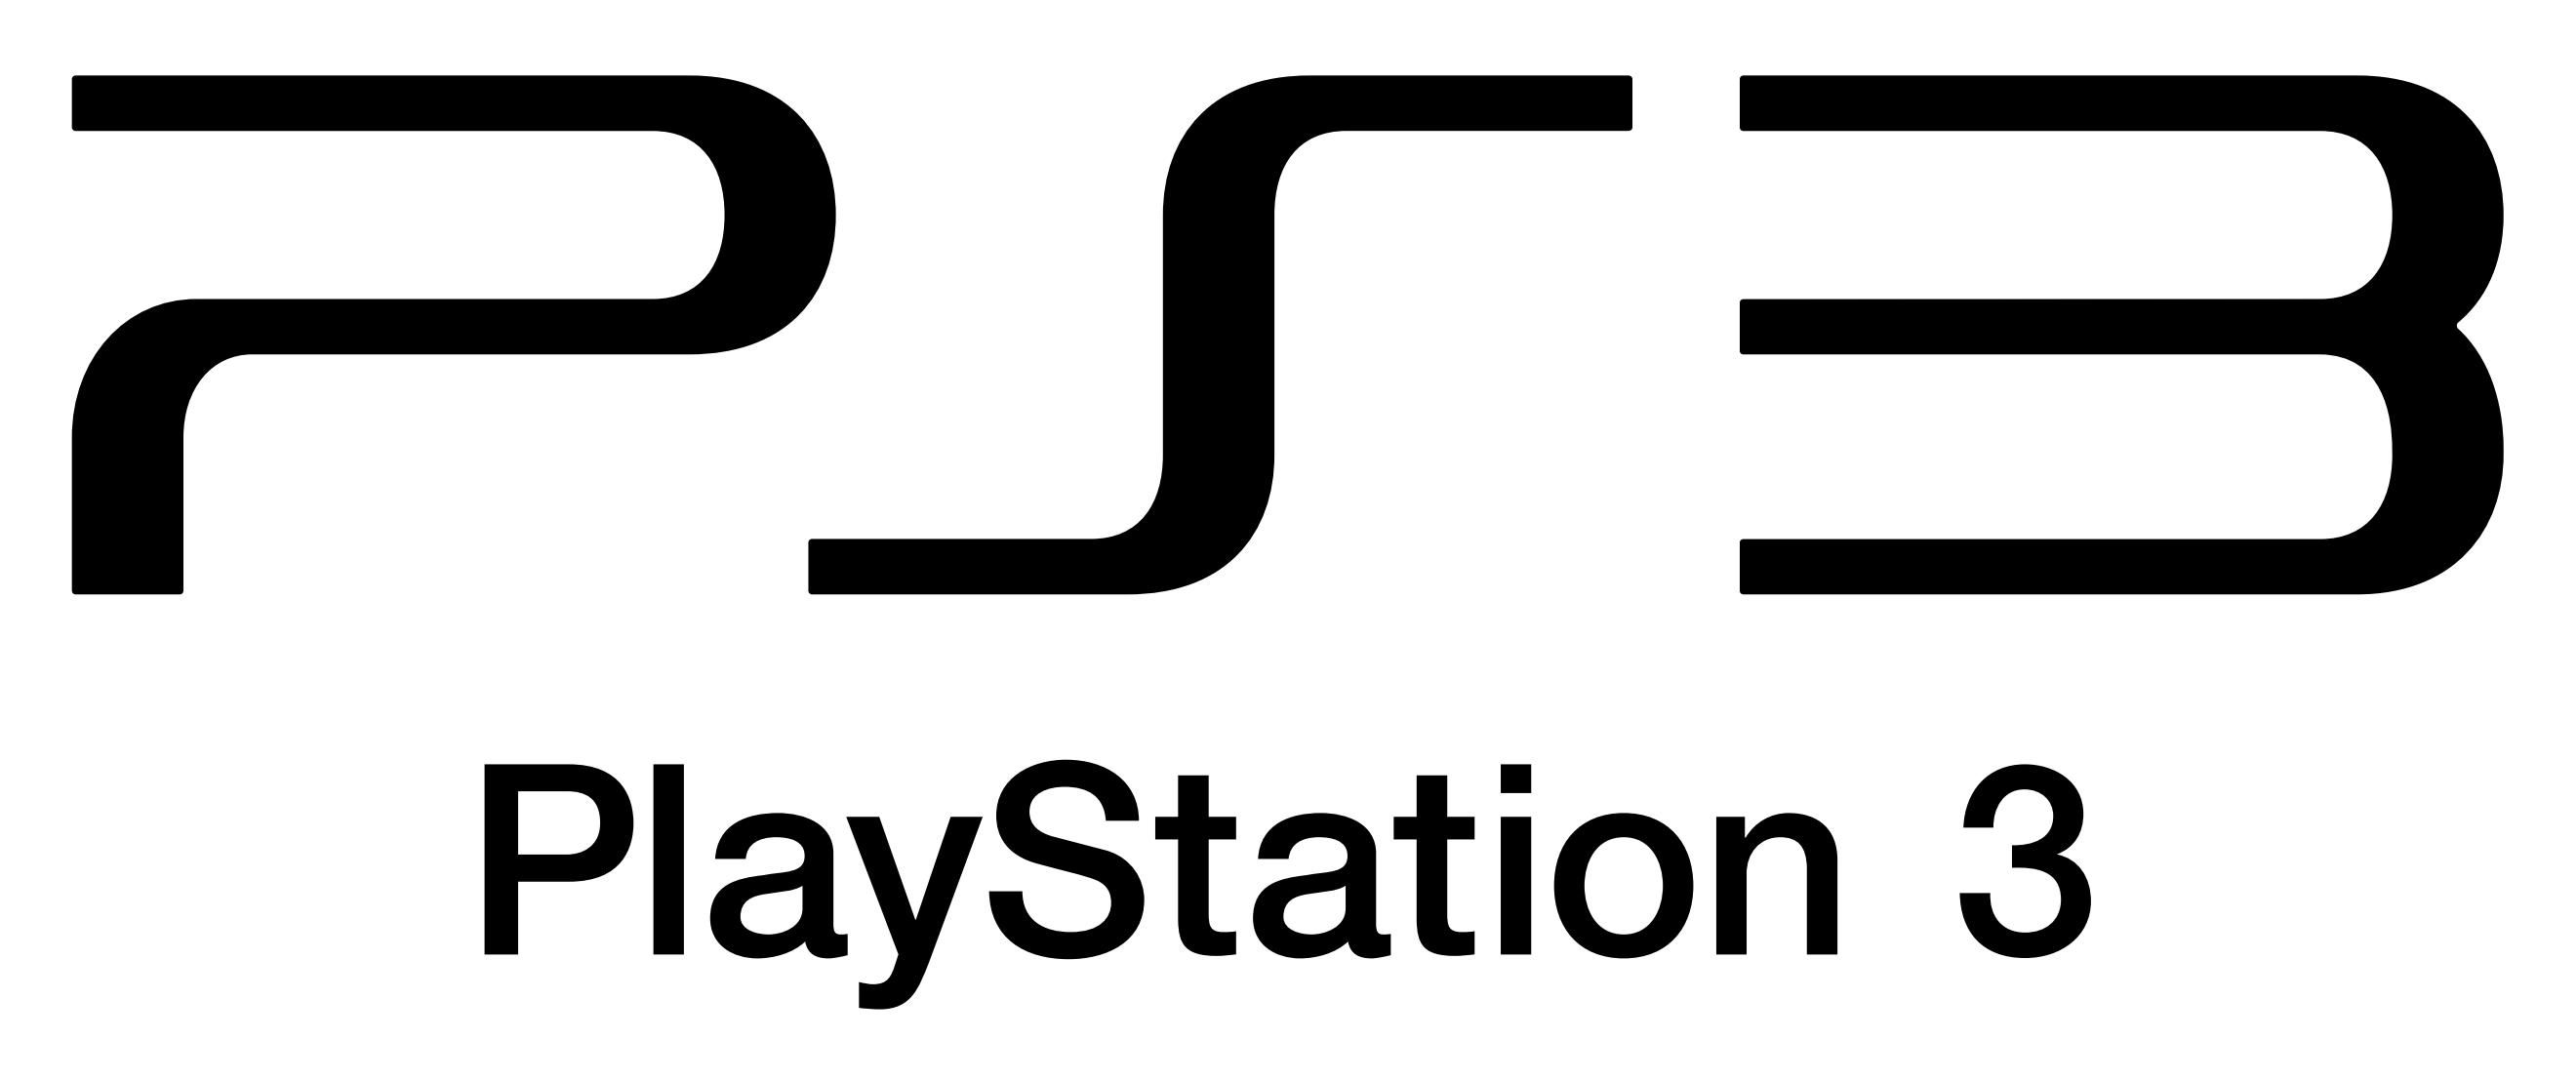 PS3 – PlayStation 3 Logo Vector [EPS File] | Technology ...